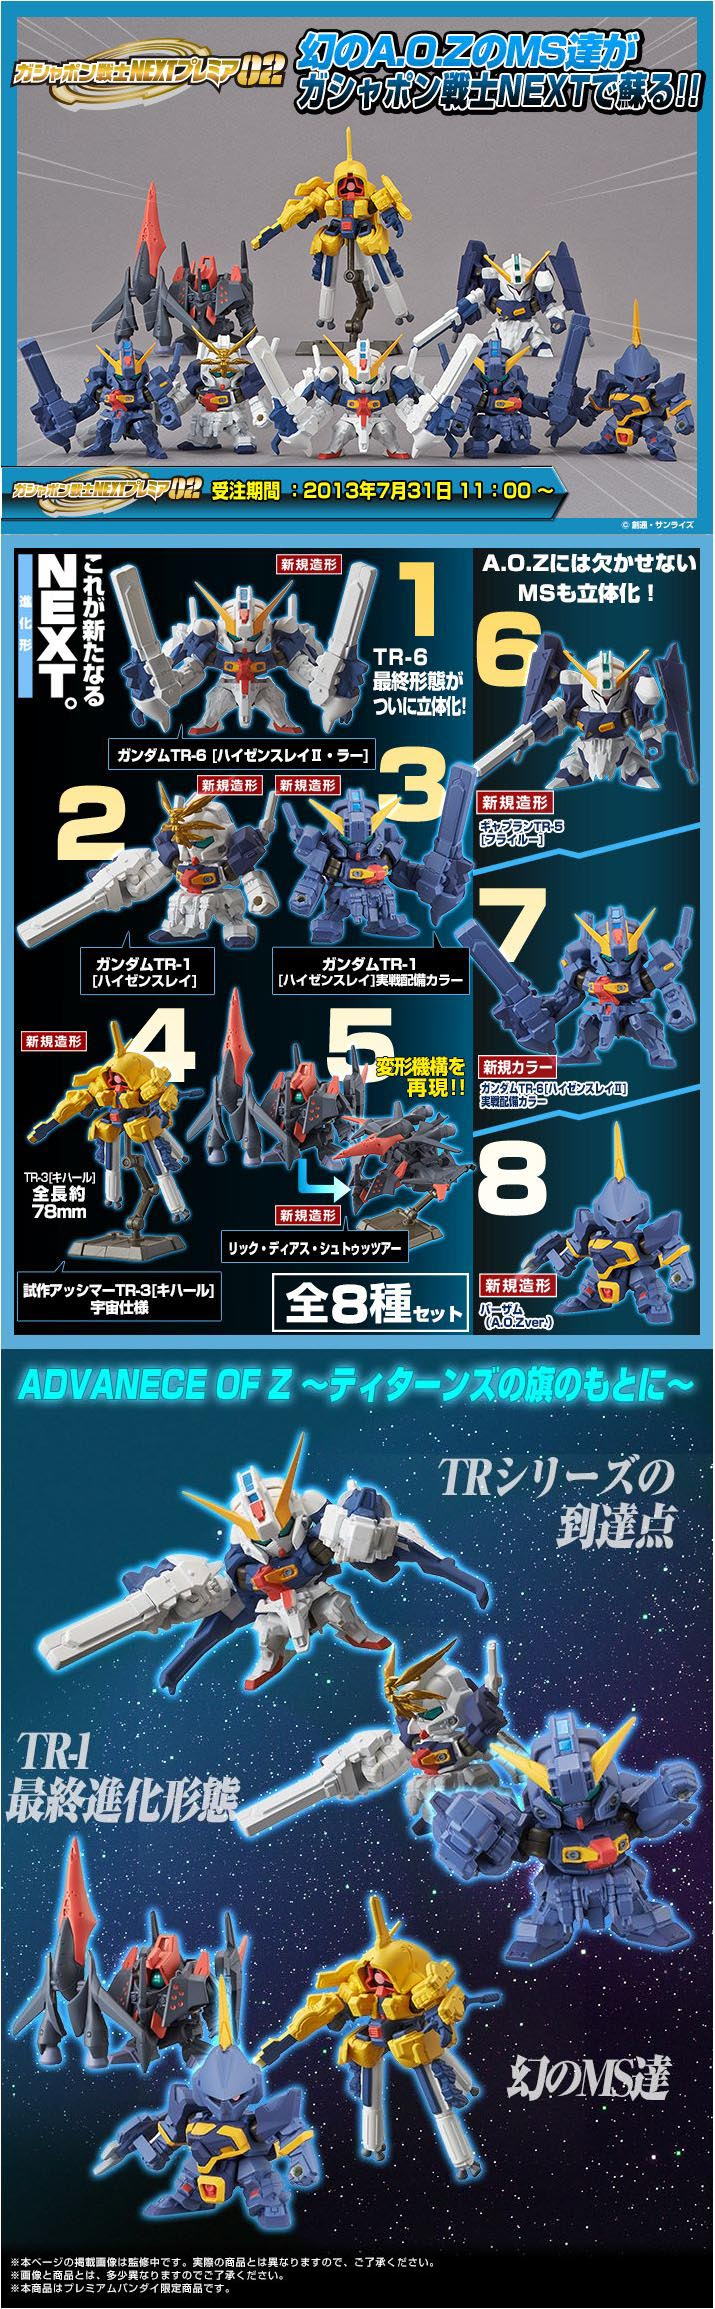 pbandai online update 31 july 2013